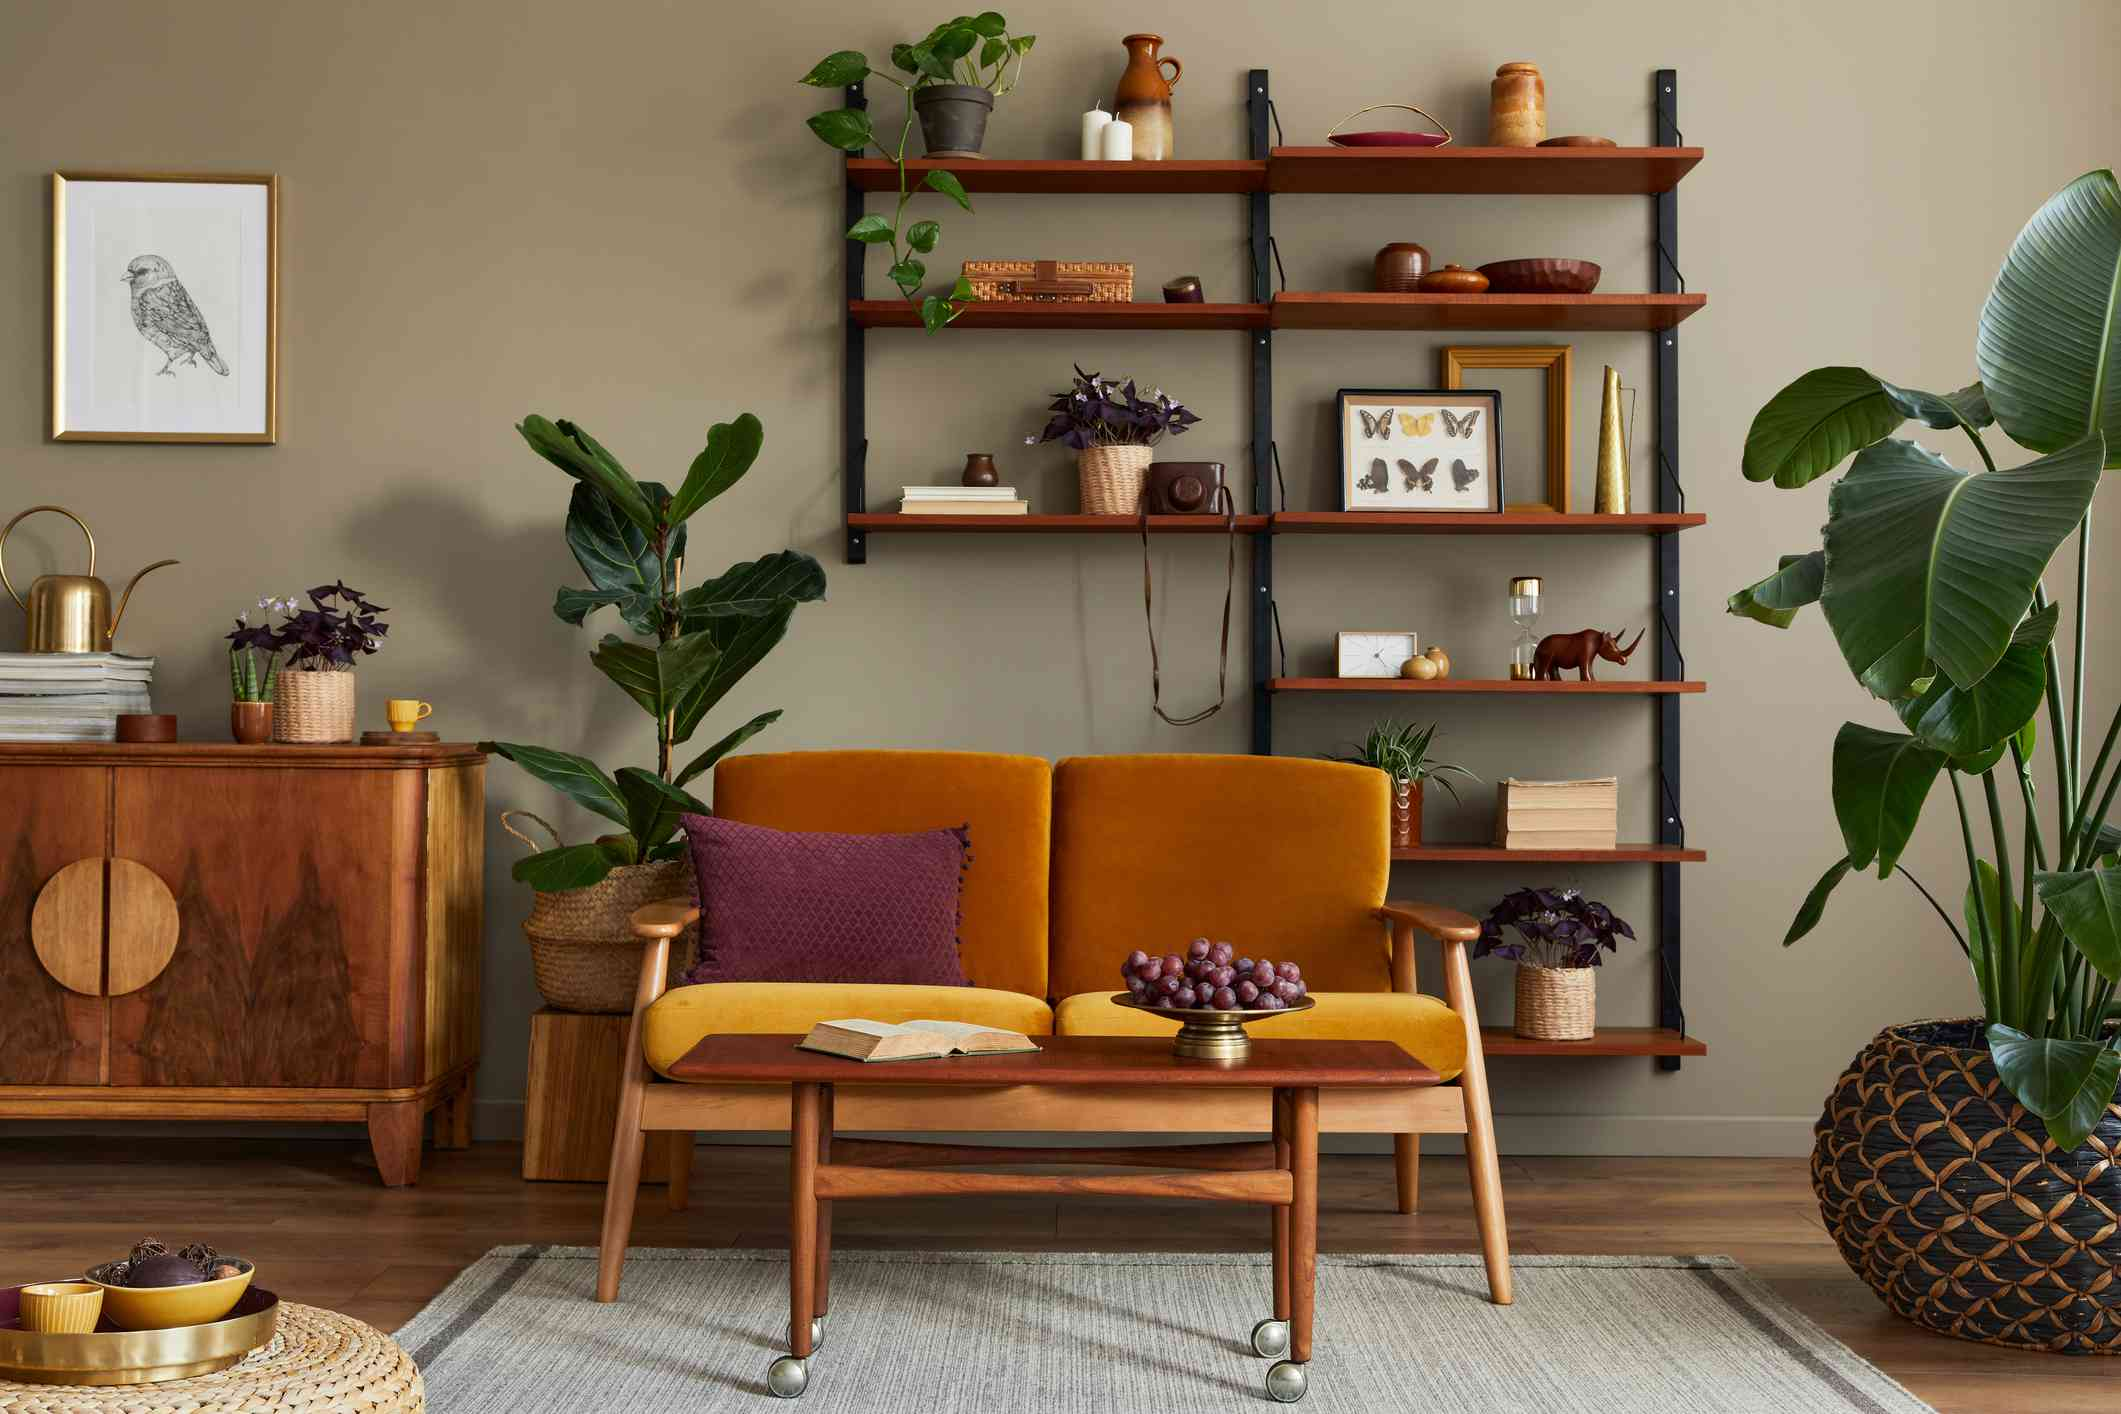 A living room with vintage furniture and plants